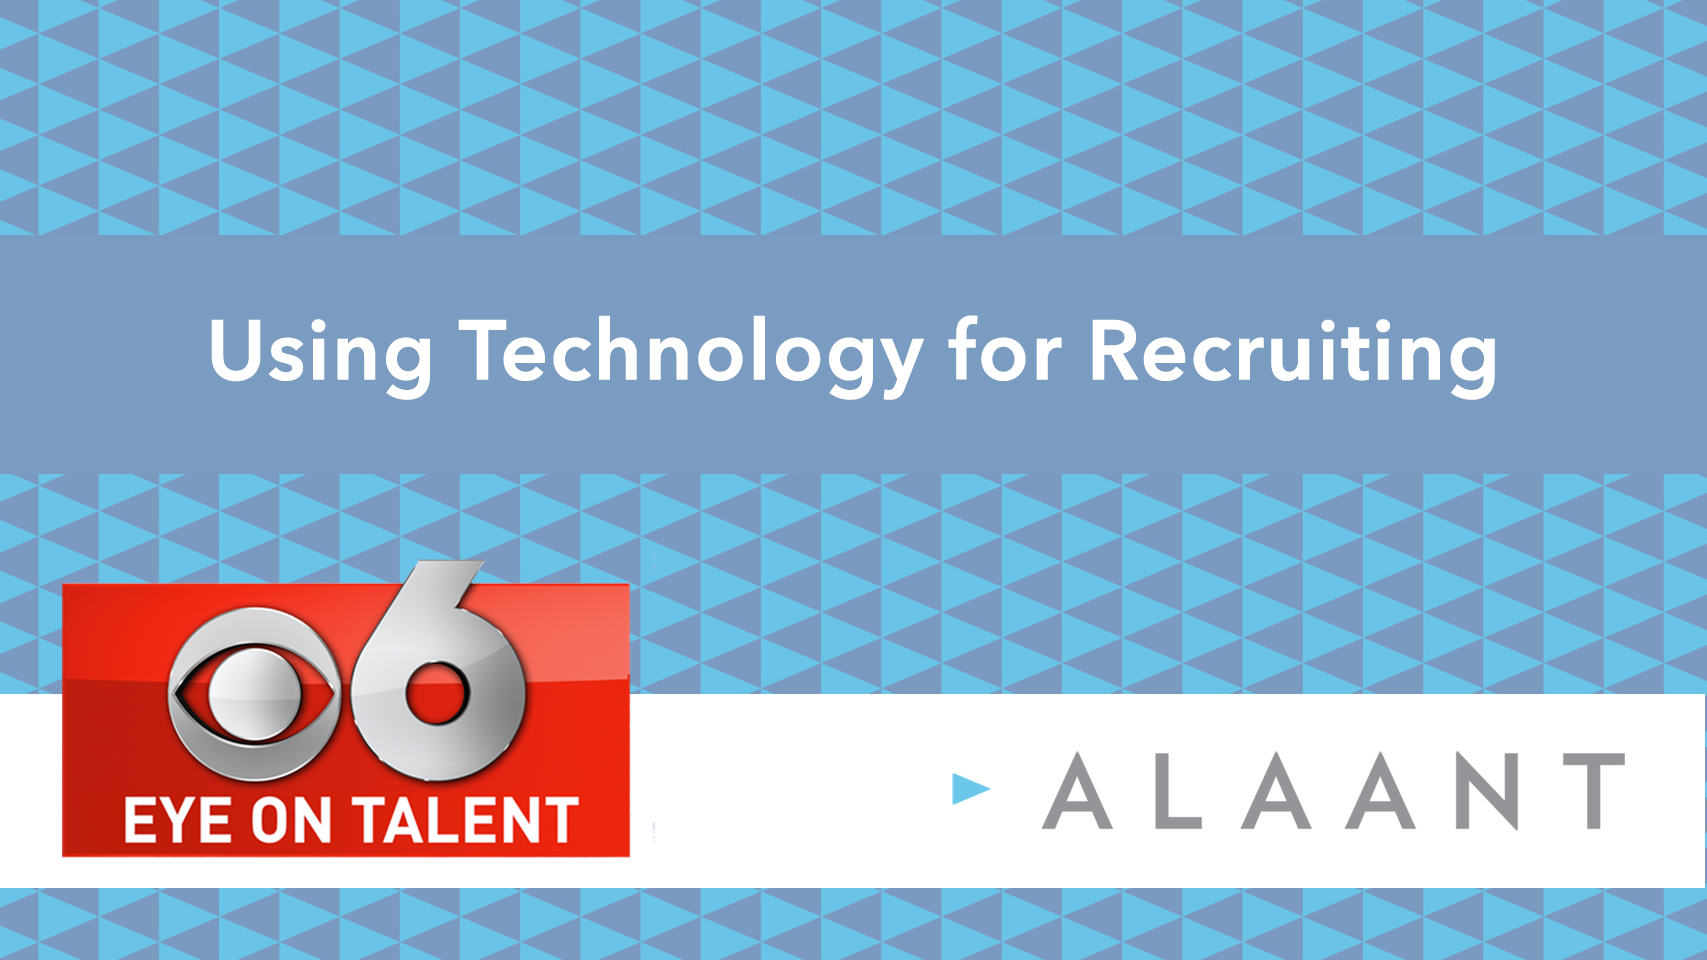 Eye on Talent: Using Technology for Recruiting